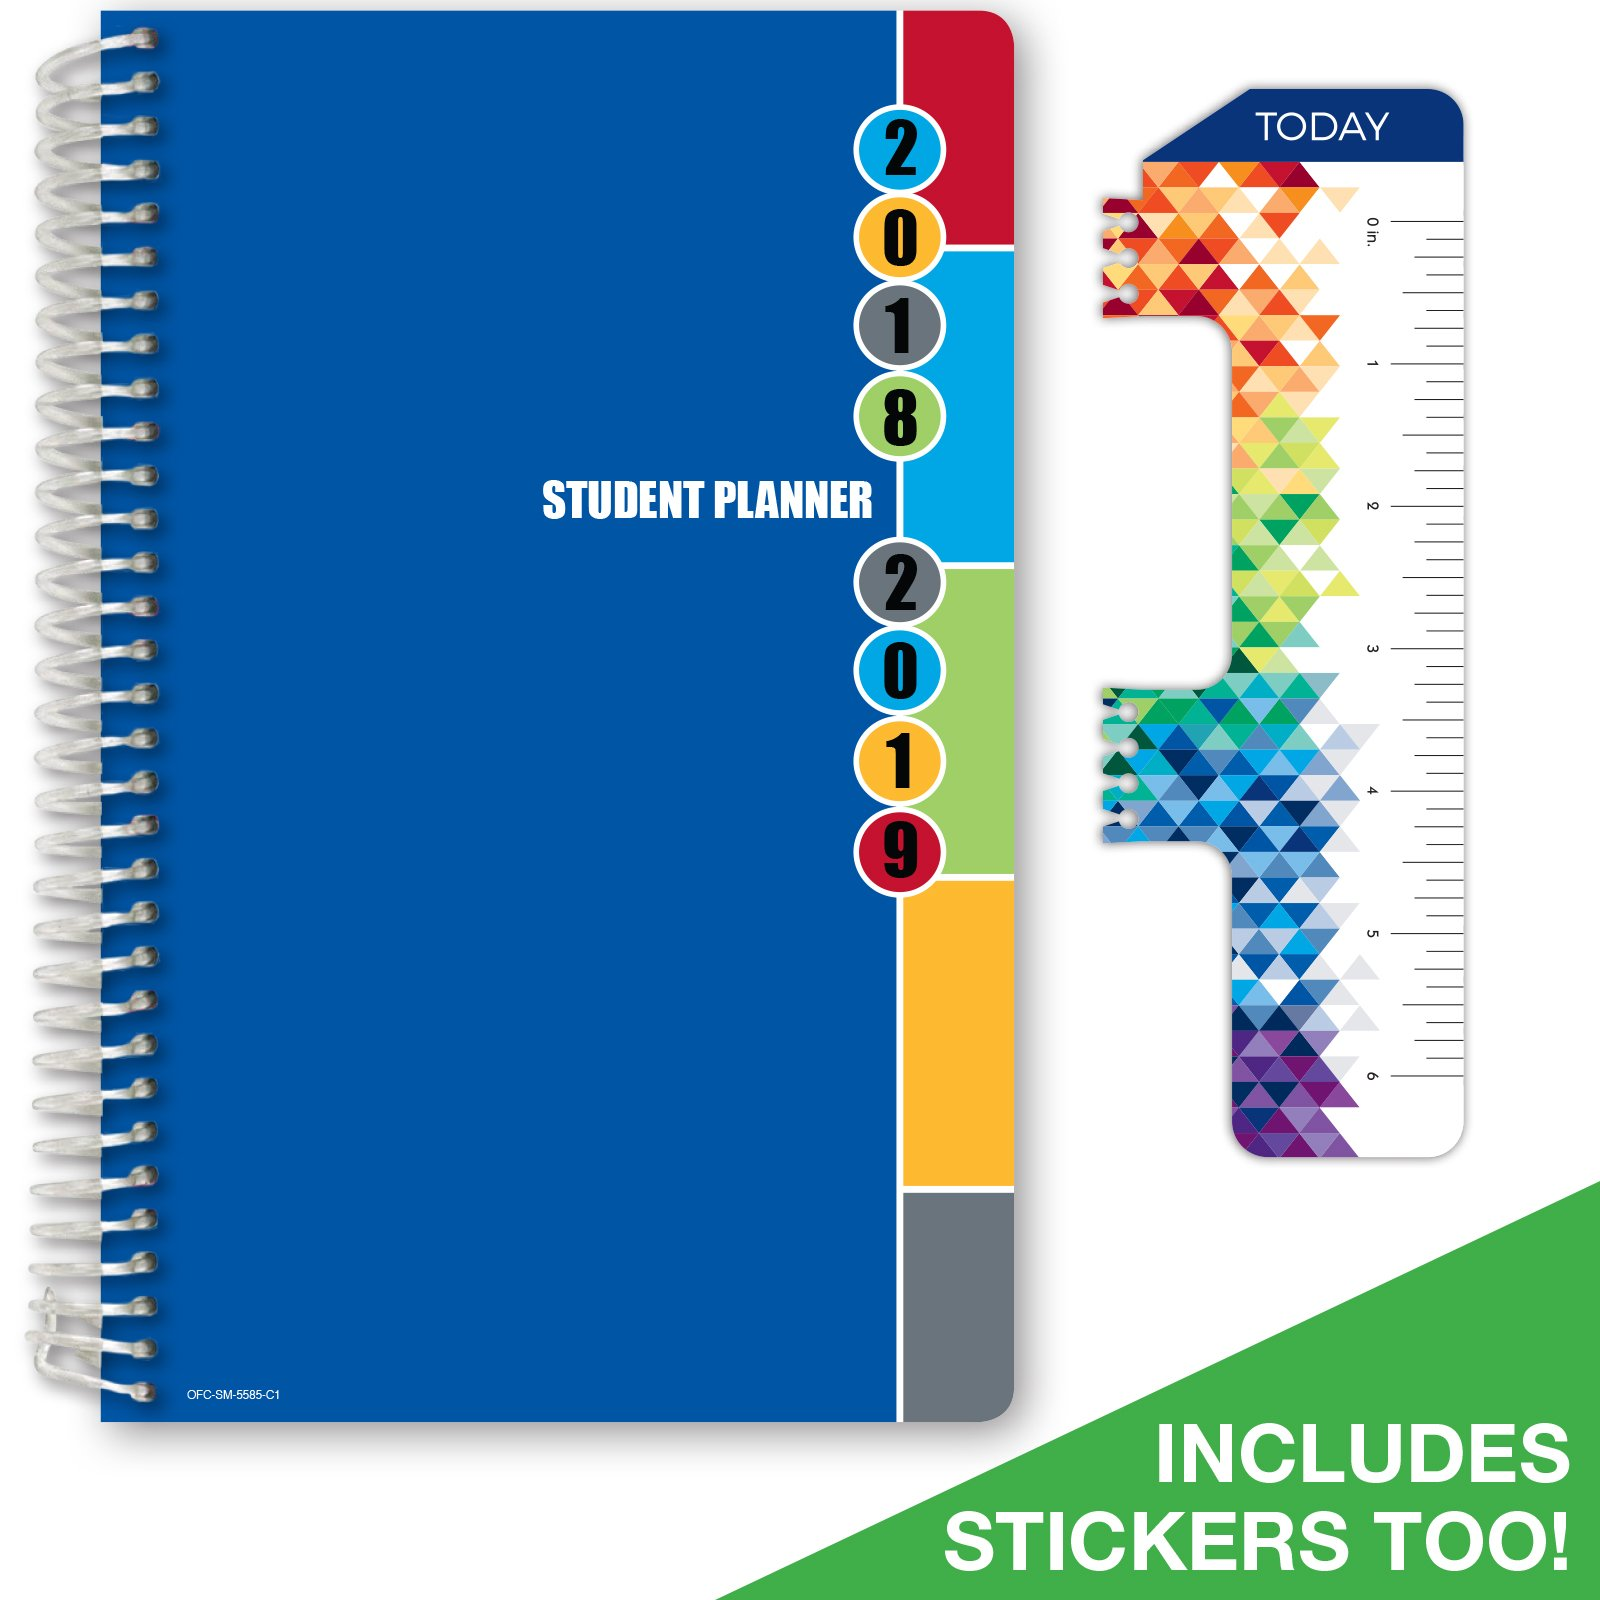 """2018-2019 Student Planner 5.5""""x8.5""""High School or Middle School for Academic Year 2018-2019 (Matrix Style Agenda -Blue Colors Cover) - Bonus RULER / BOOKMARK and PLANNING STICKERS"""